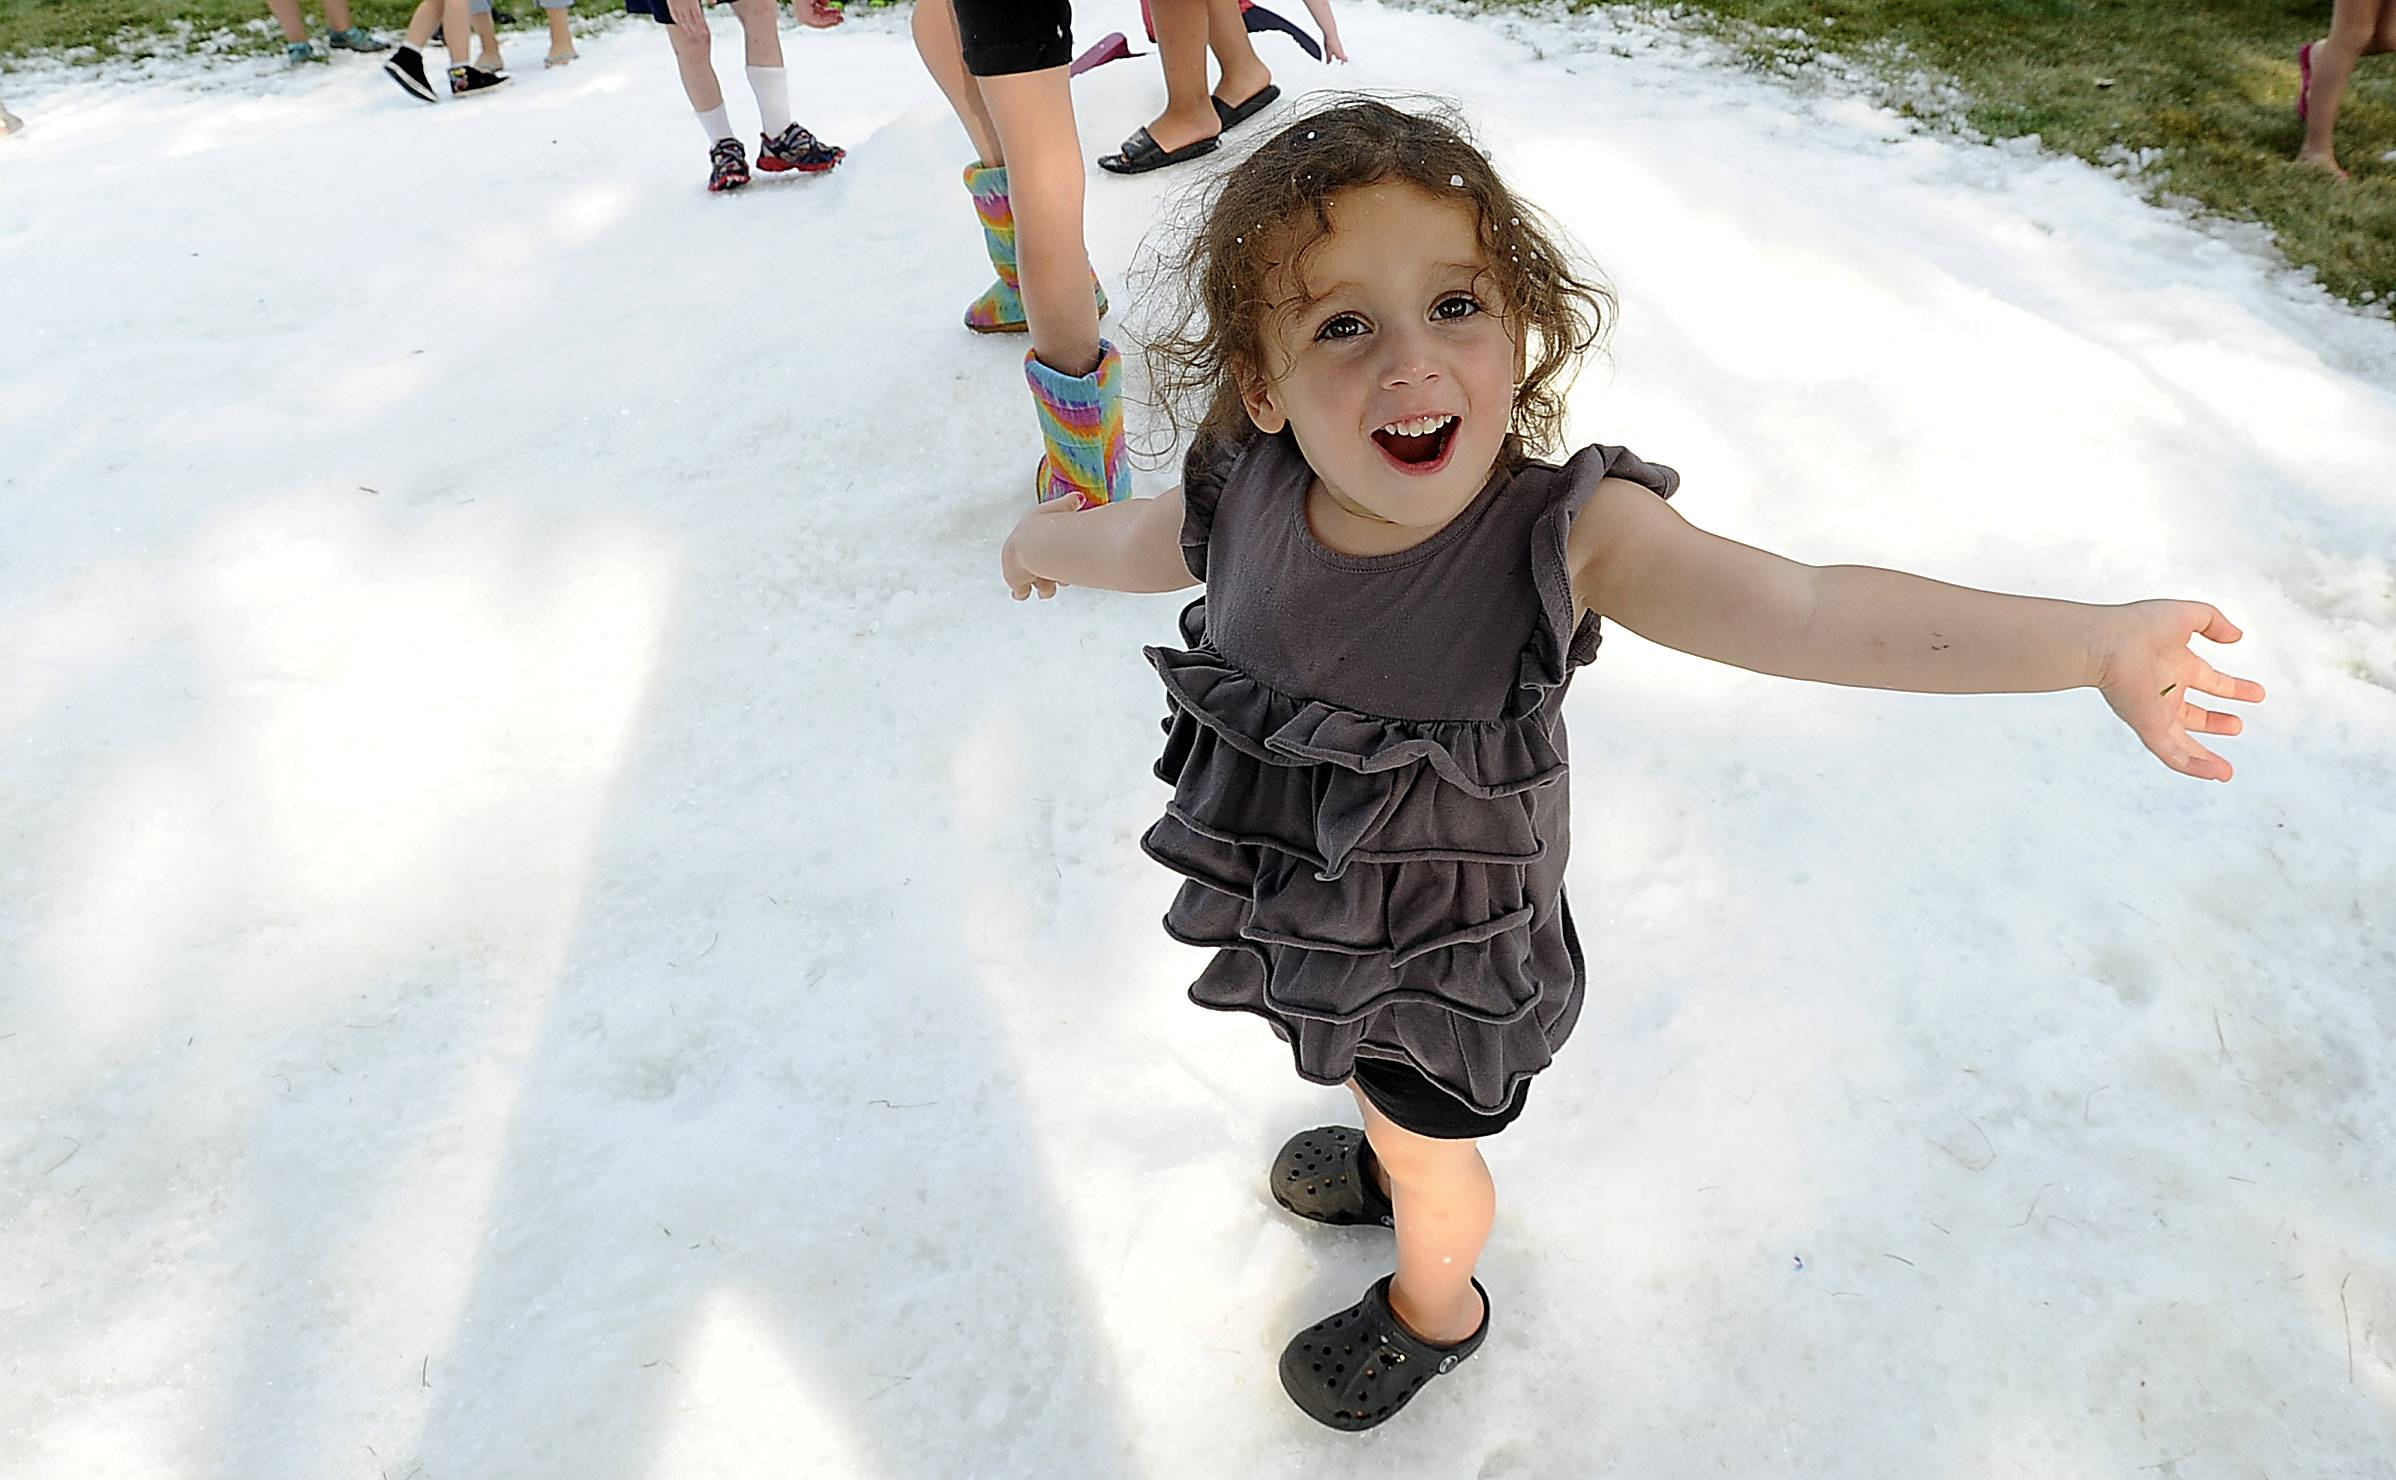 Alaina Rugliancich, 2, of Rolling Meadows was in amazement as she discovered snow on a hot August night in Rolling Meadows.